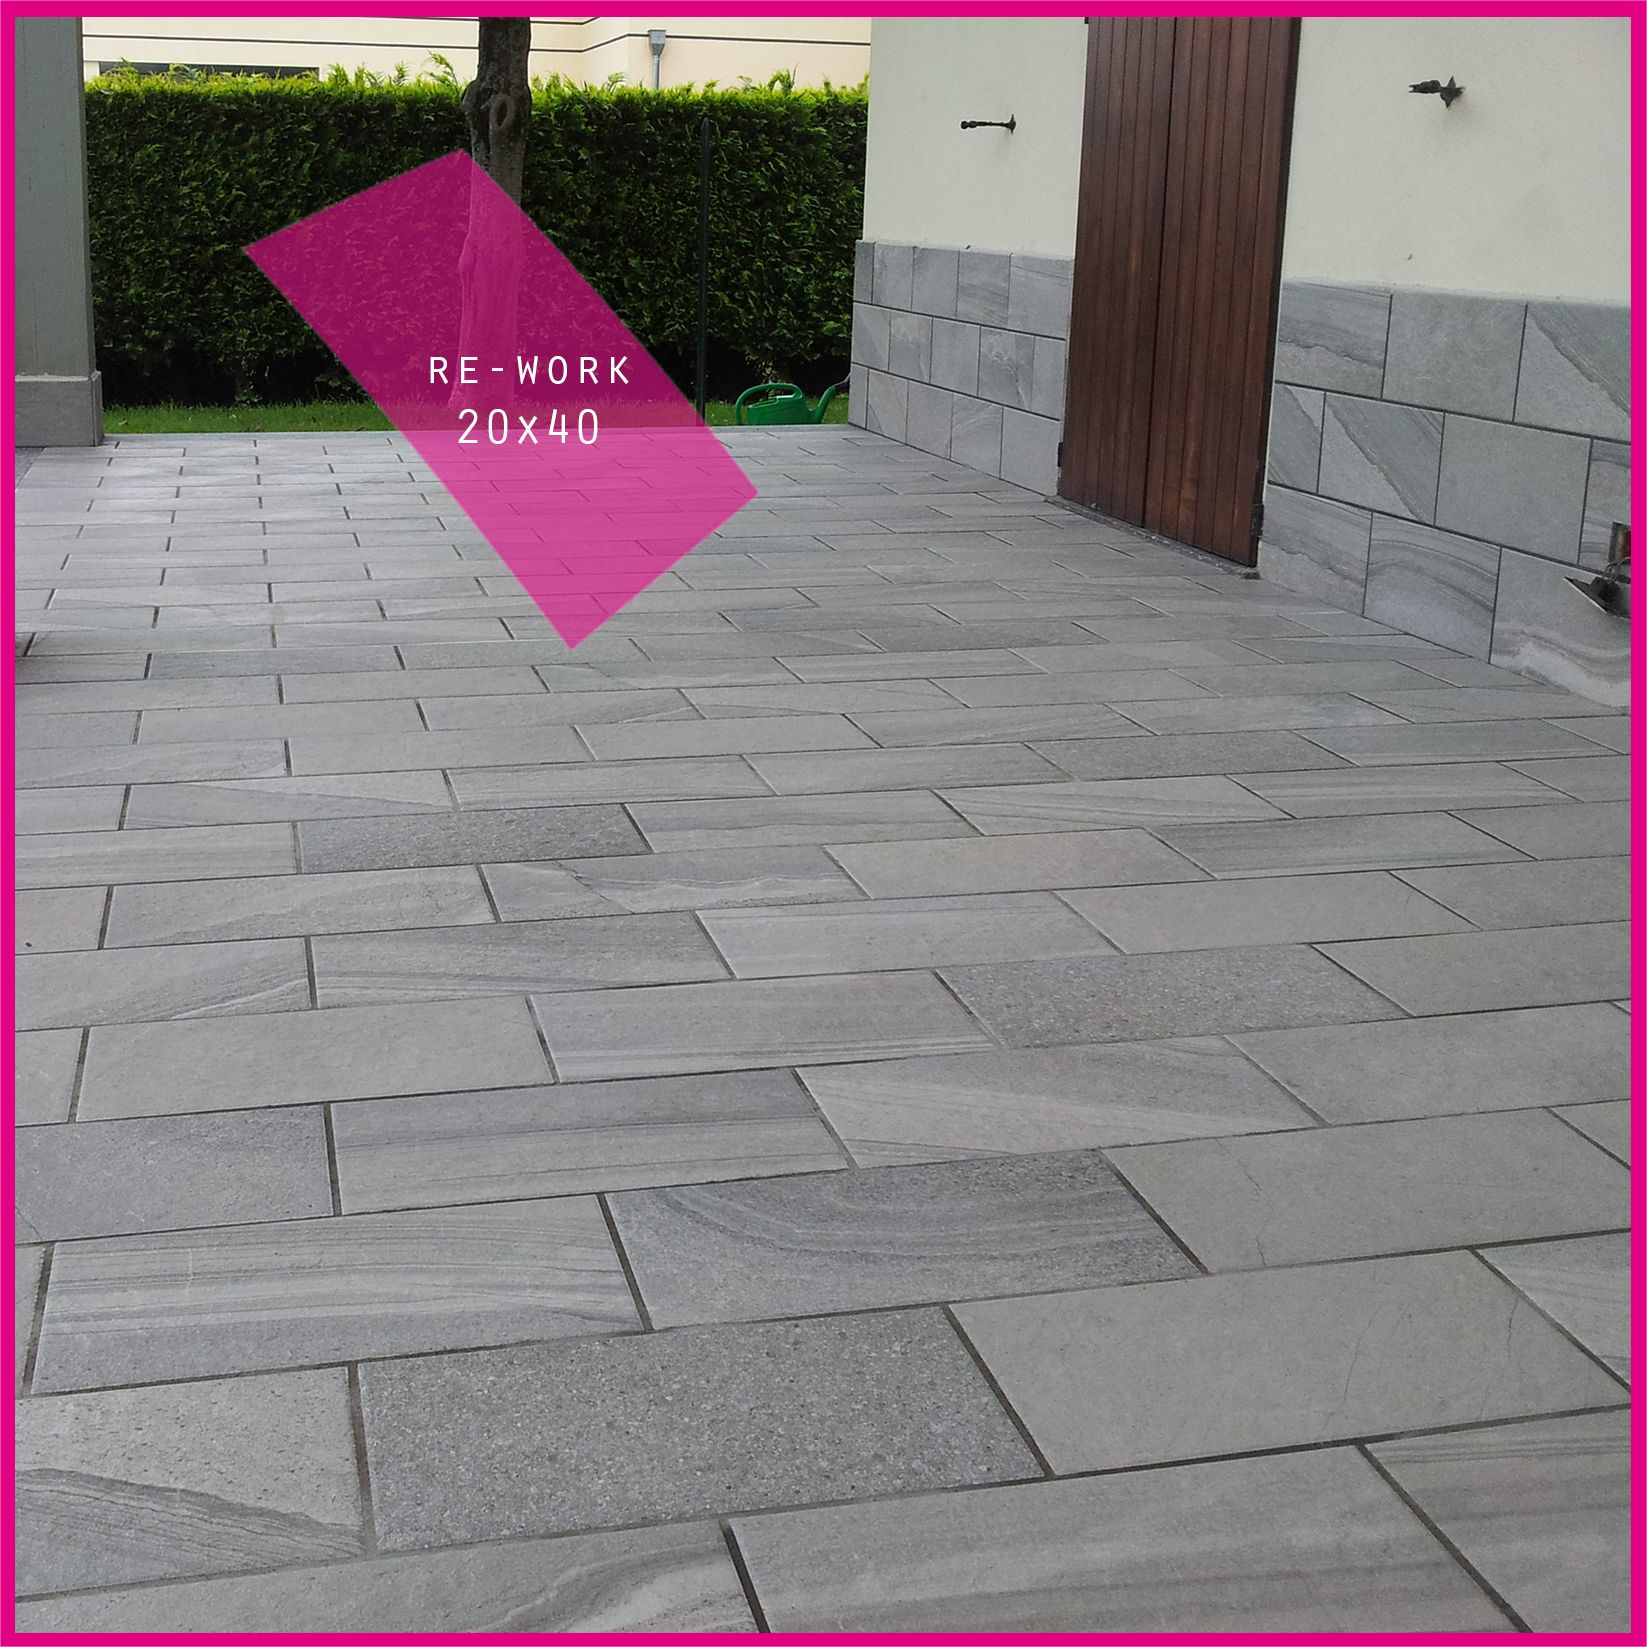 Product re work abk ceramica ceramics outdoor floor design product re work abk ceramica ceramics outdoor floor outdoor tilesfloor designflooring tiles dailygadgetfo Images